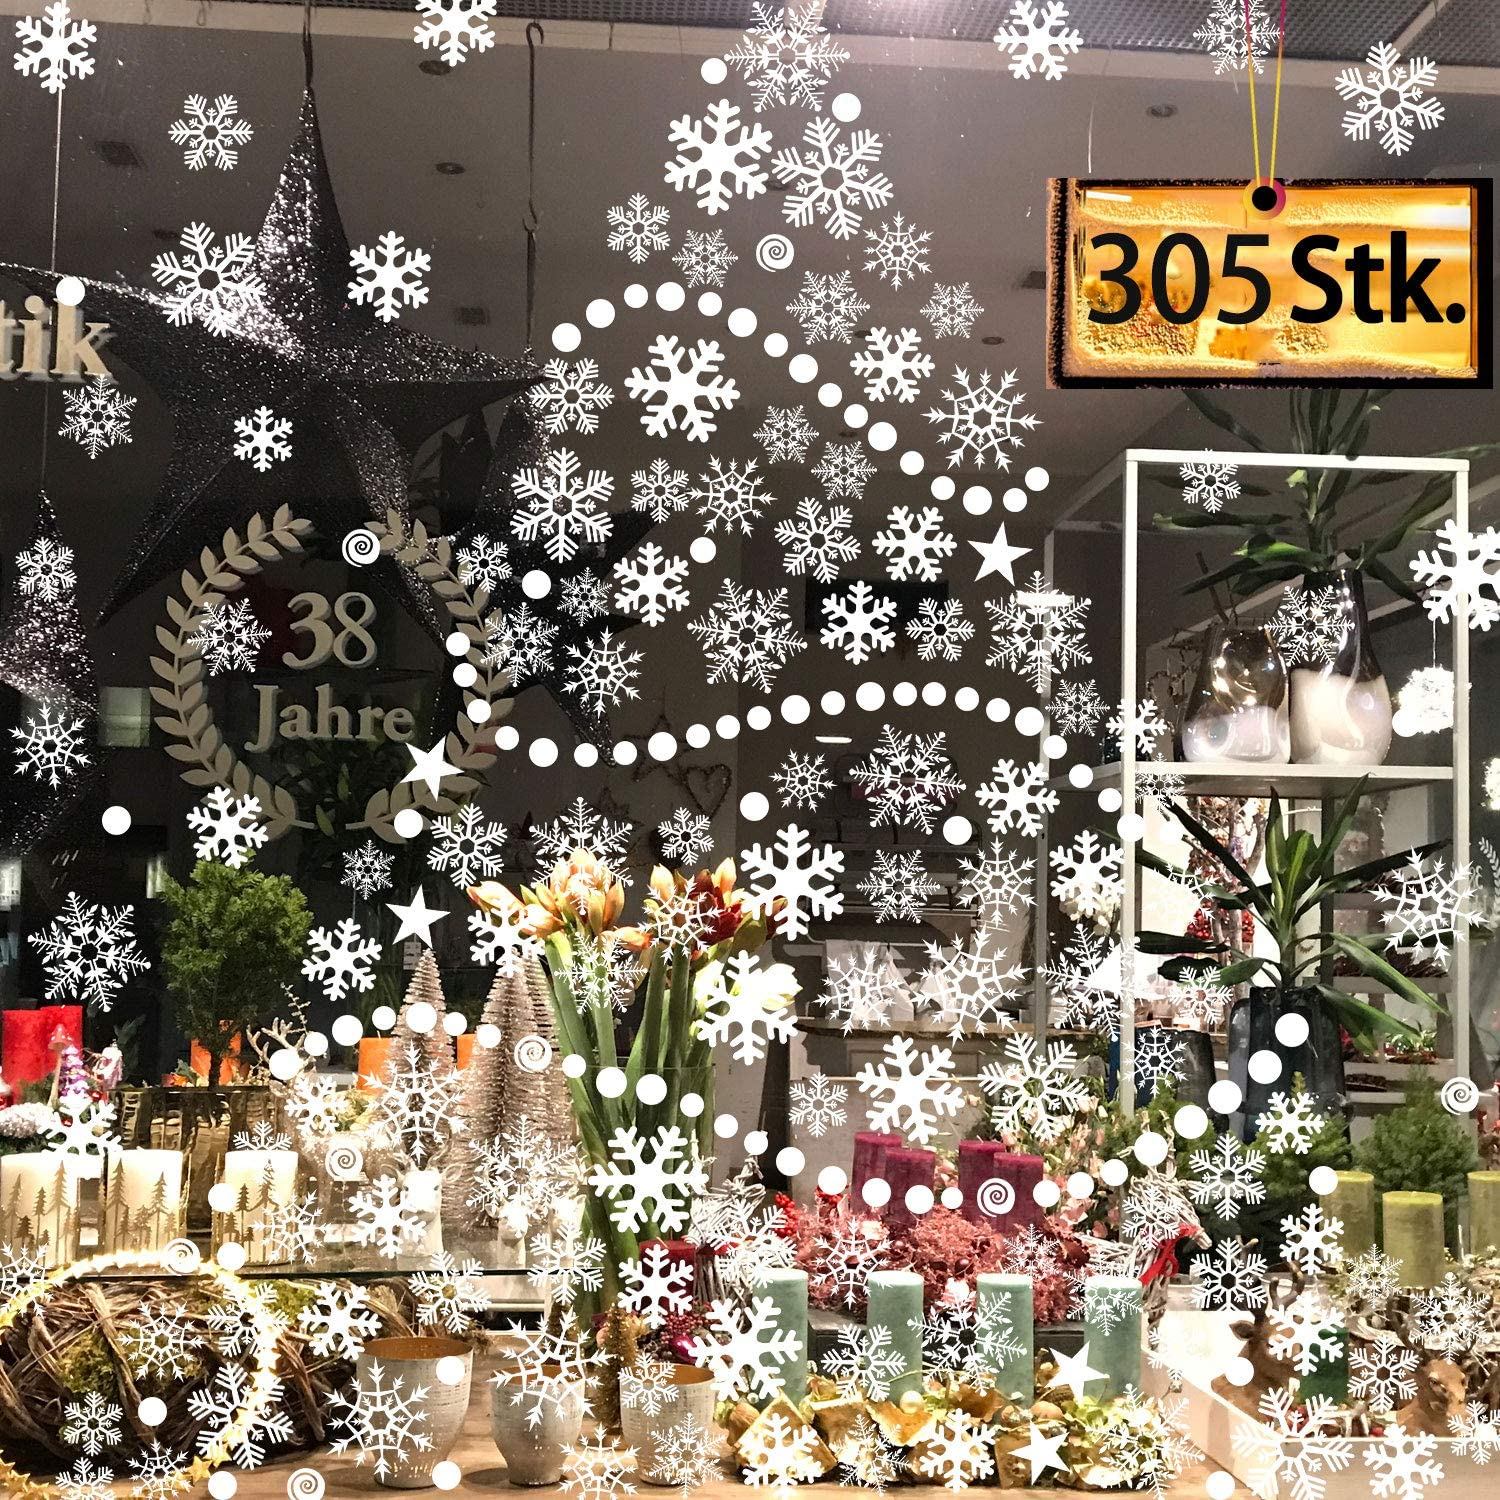 305 PCS Christmas Window Clings, Christmas Snowflake Window Sticker Decals, Reusable Electrostatic , for Window Glass Mirror Decorations Ornament Xmas Holiday Party Supplies